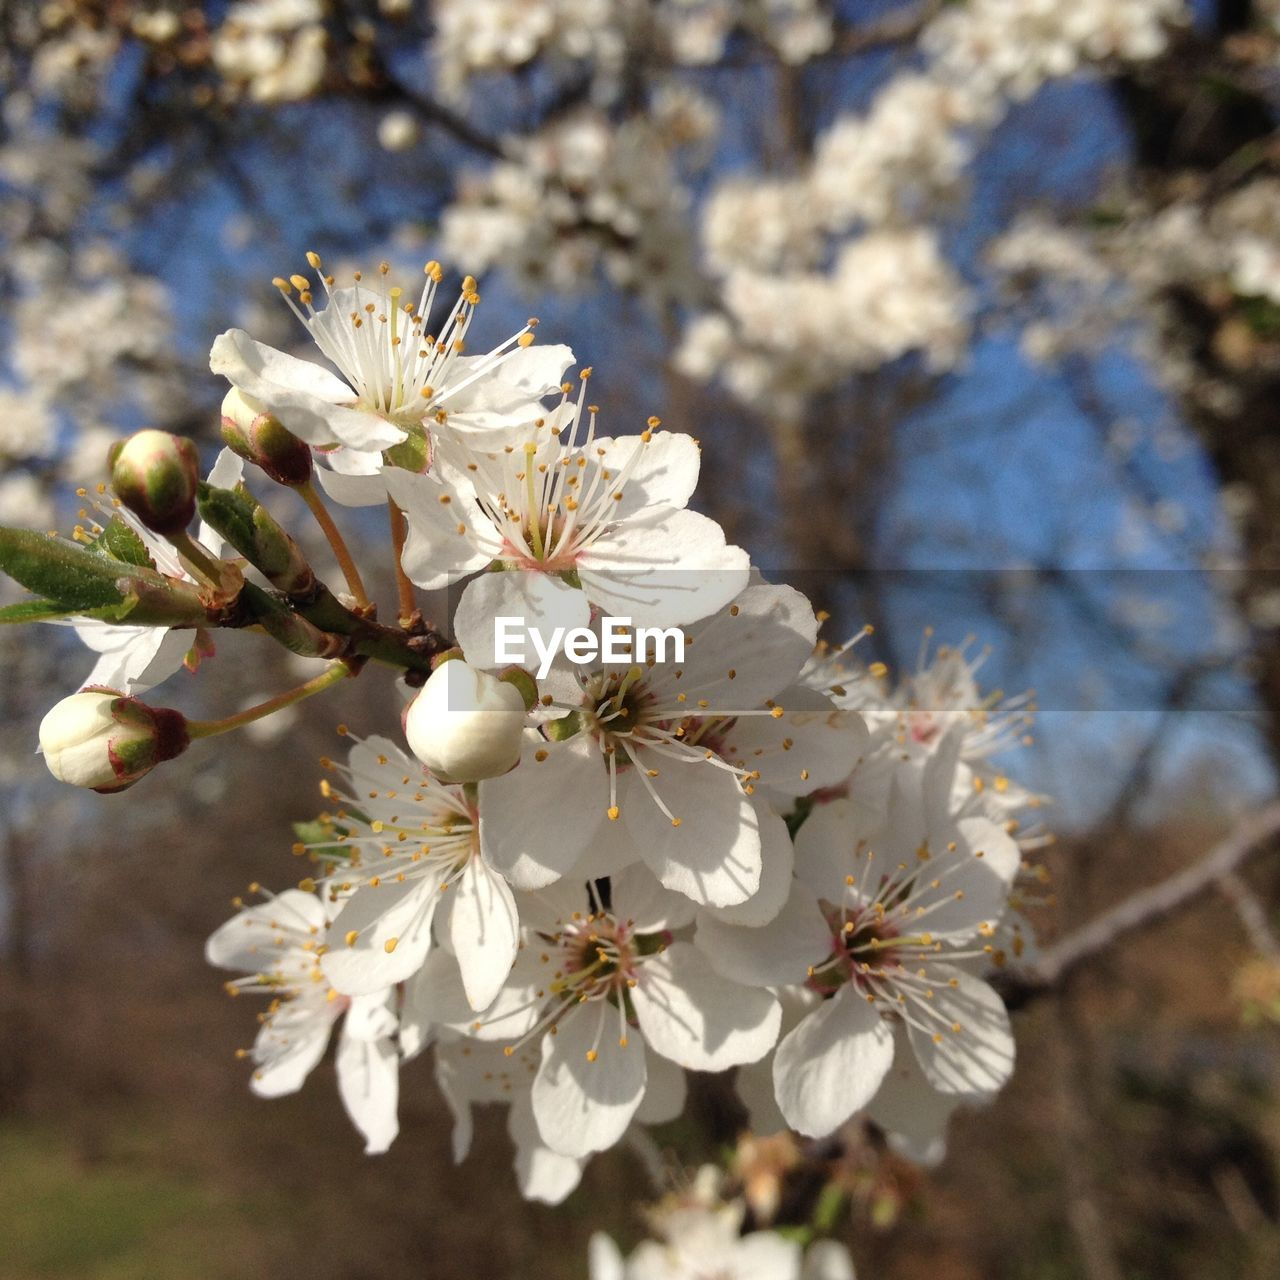 flowering plant, flower, plant, beauty in nature, fragility, freshness, vulnerability, growth, tree, white color, blossom, close-up, branch, nature, springtime, twig, day, petal, botany, no people, pollen, cherry blossom, flower head, outdoors, cherry tree, spring